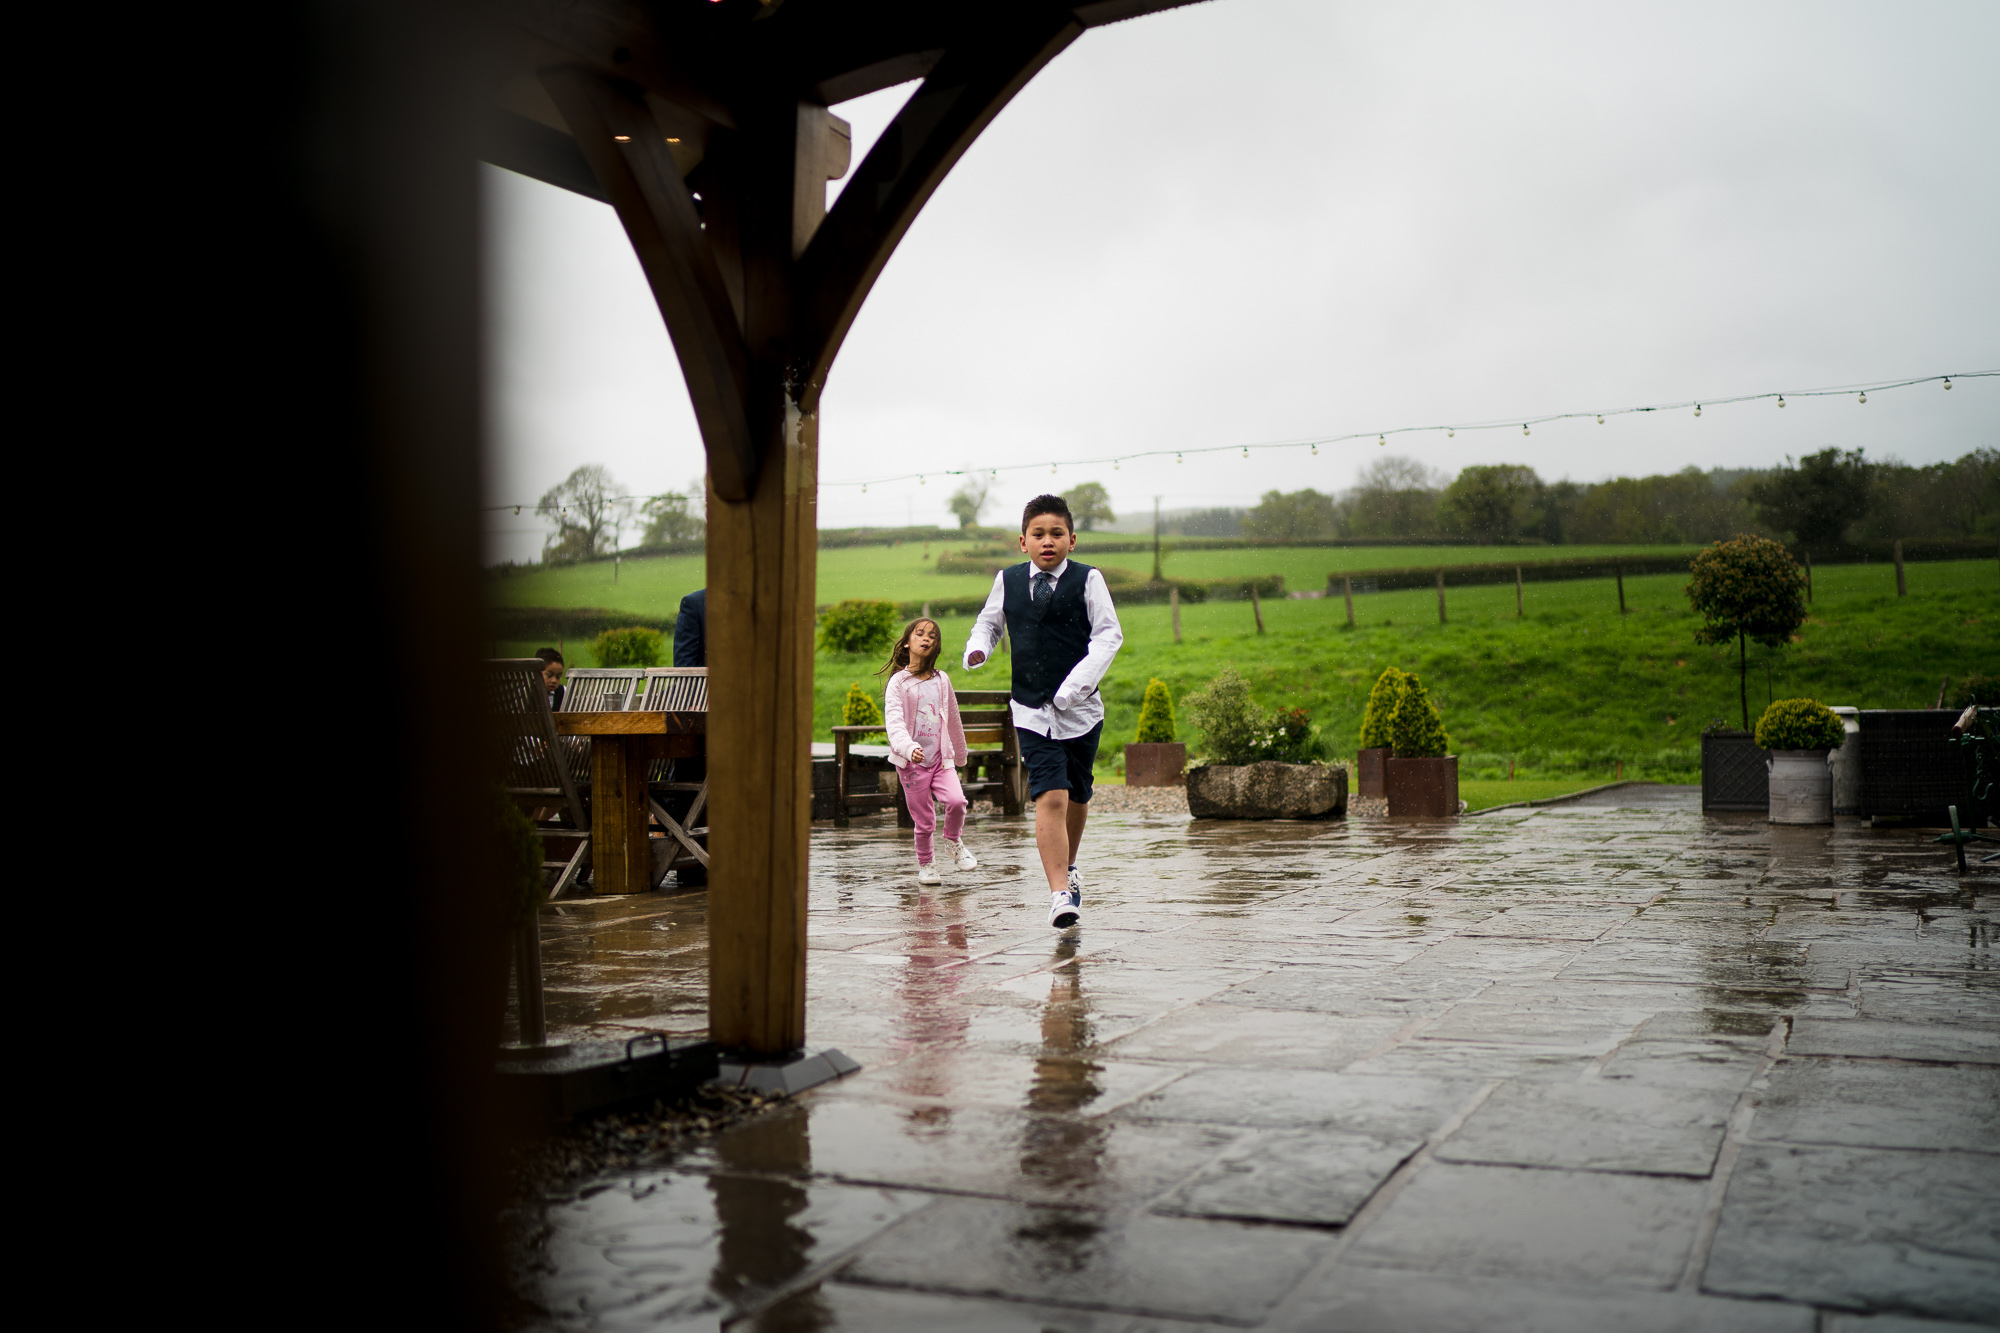 Tower Hill BArn Wedding Photographer based in north west england (7 of 35).jpg